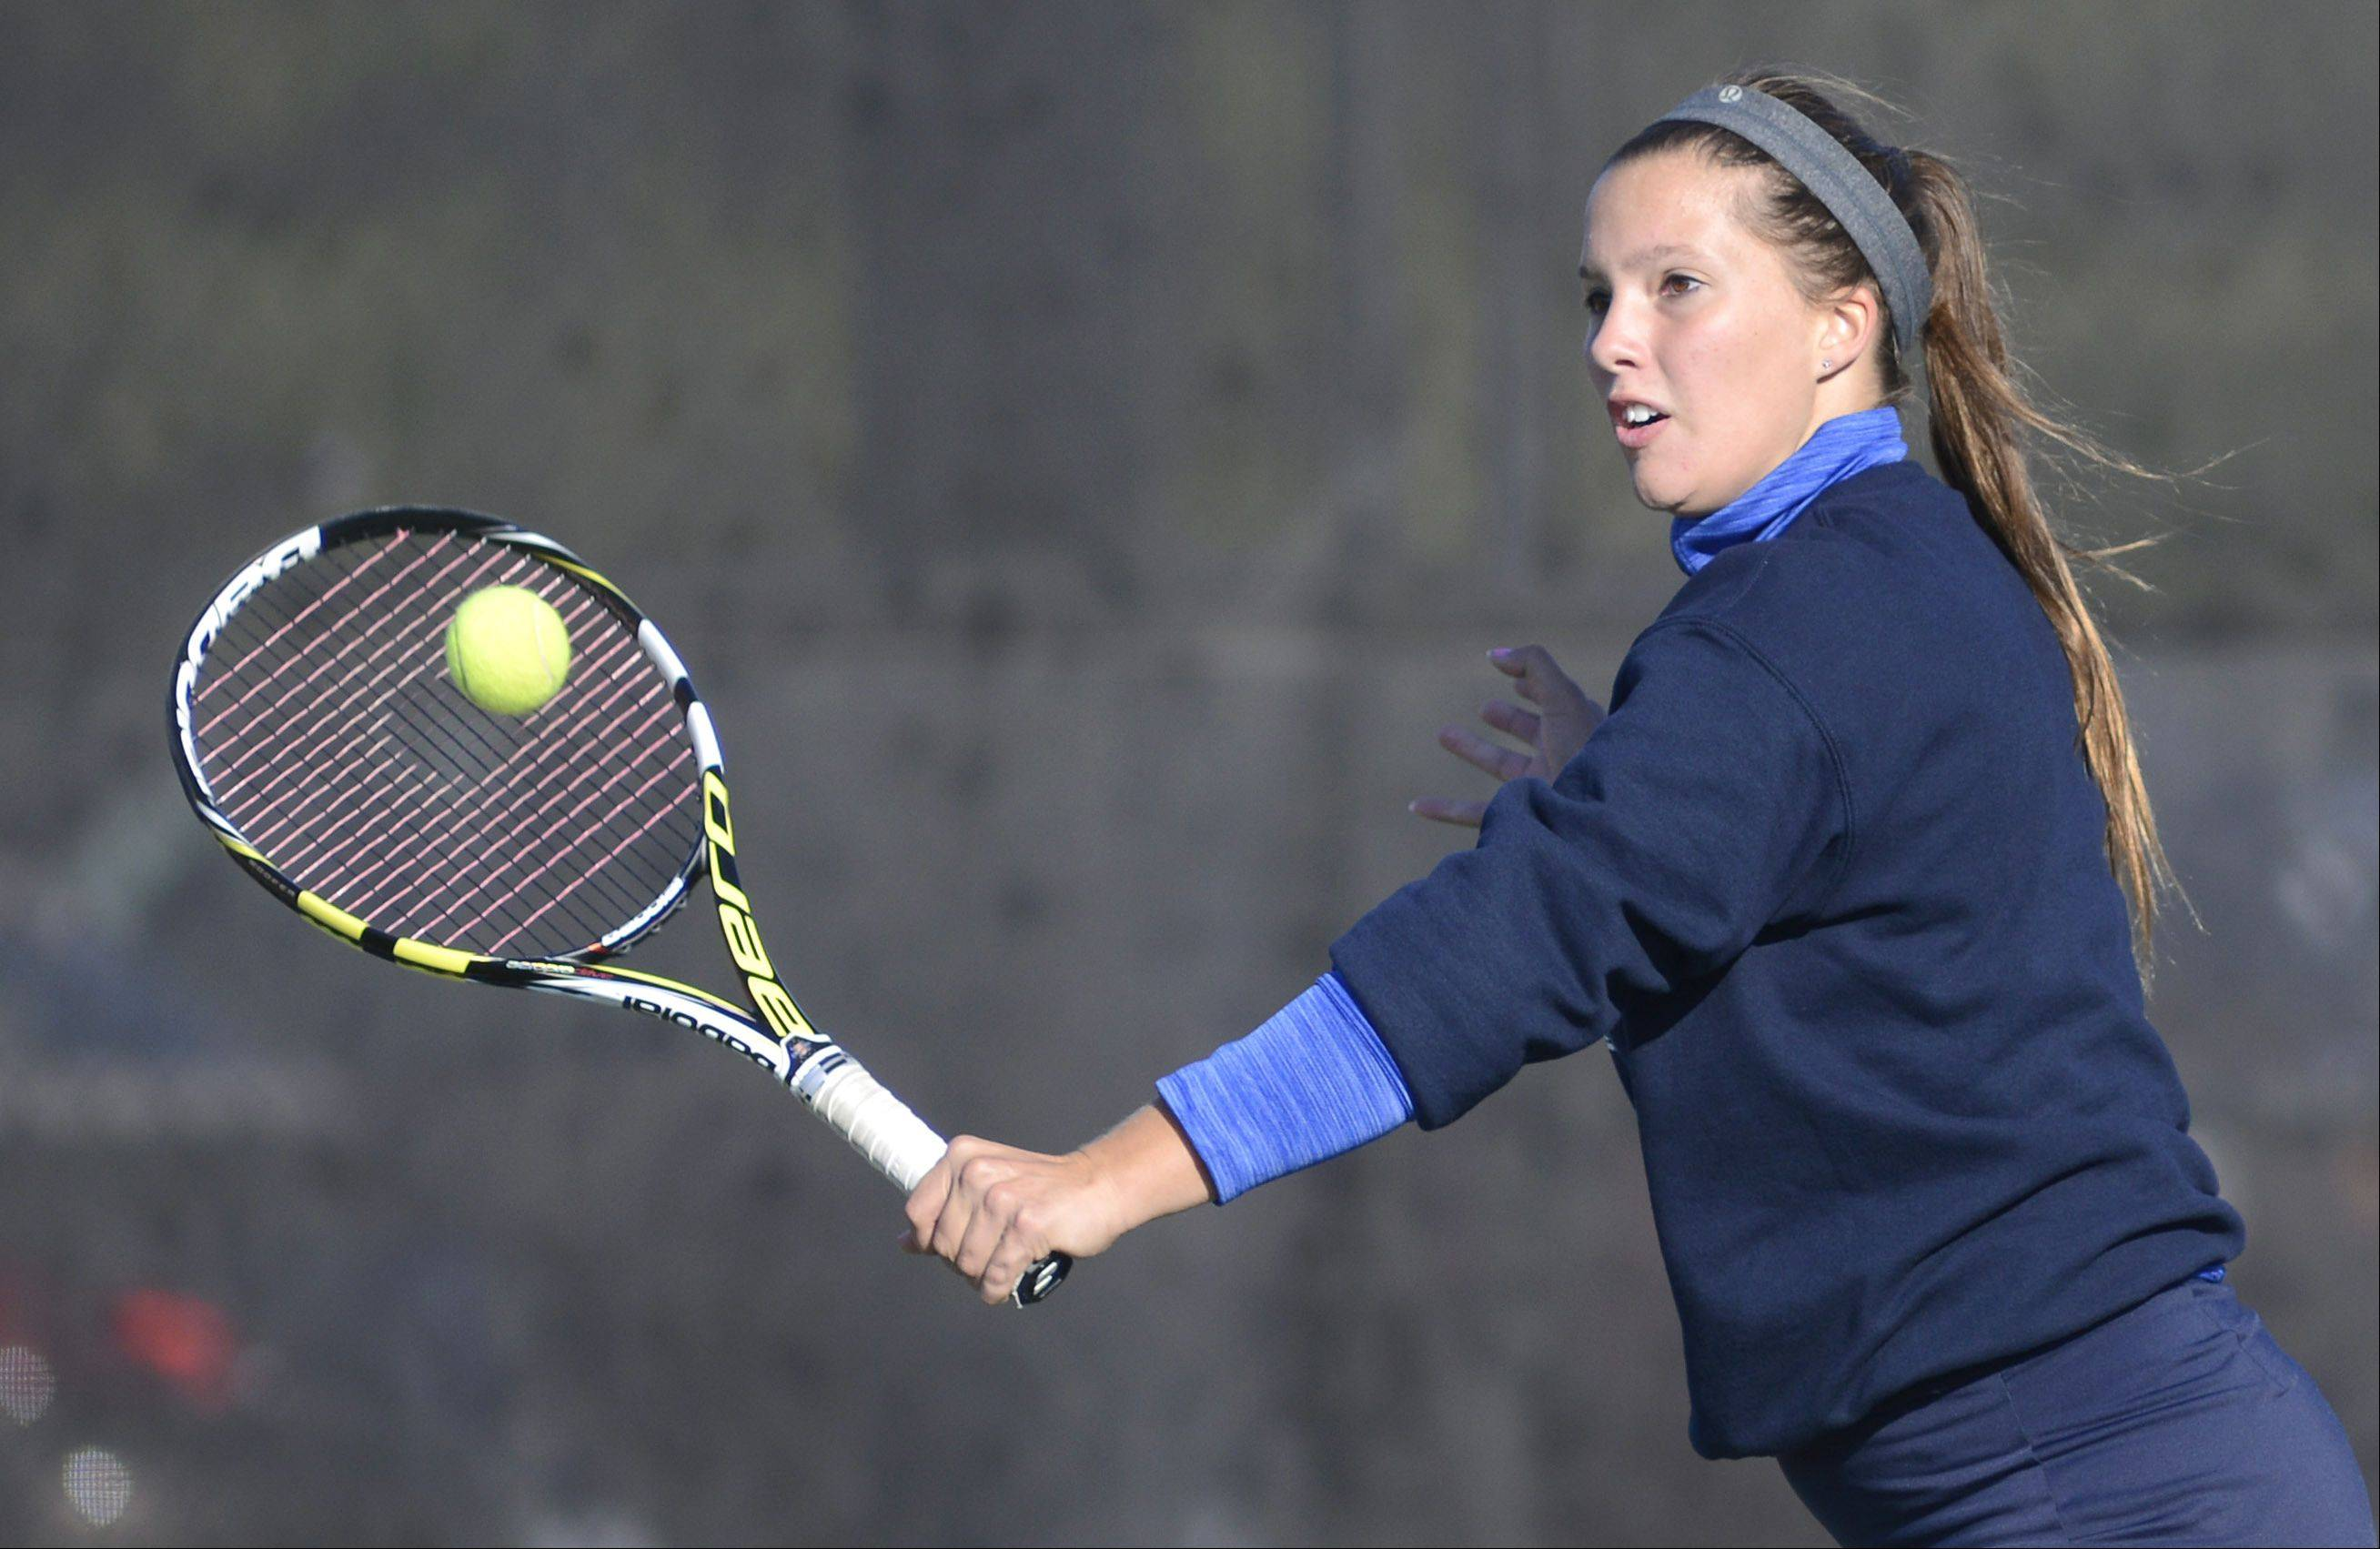 Bartlett senior Jen Gates returns a serve during the doubles championship match vs. Batavia last weekend at St. Charles East. Gates will team with senior Gabby Gregorio at the IHSA state tournament beginning Thursday morning at Prospect.